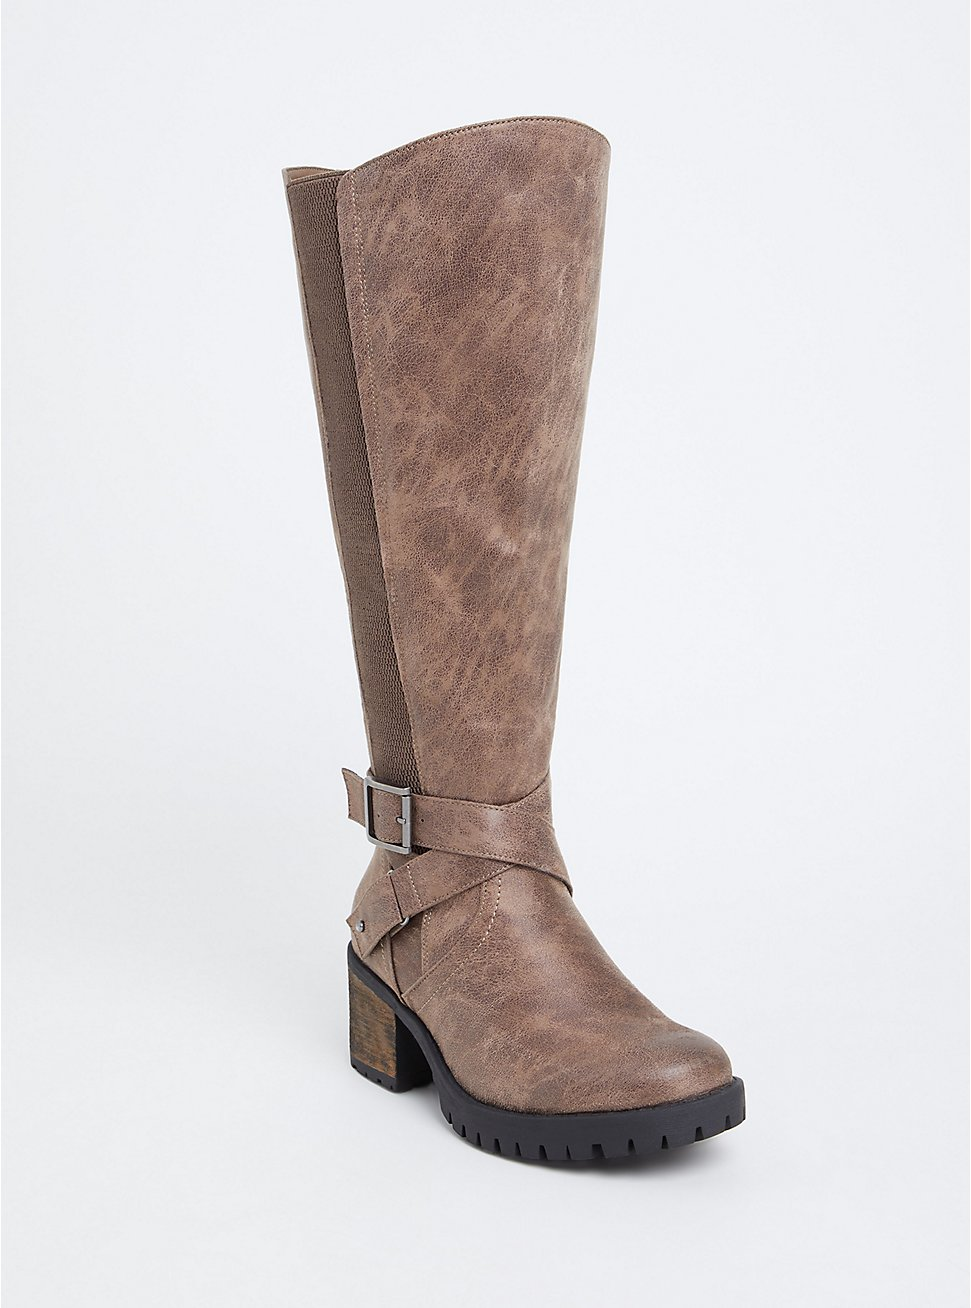 Taupe Faux Leather Lug Sole Knee-High Boot (WW & Wide to Extra Wide Calf), TAN/BEIGE, hi-res